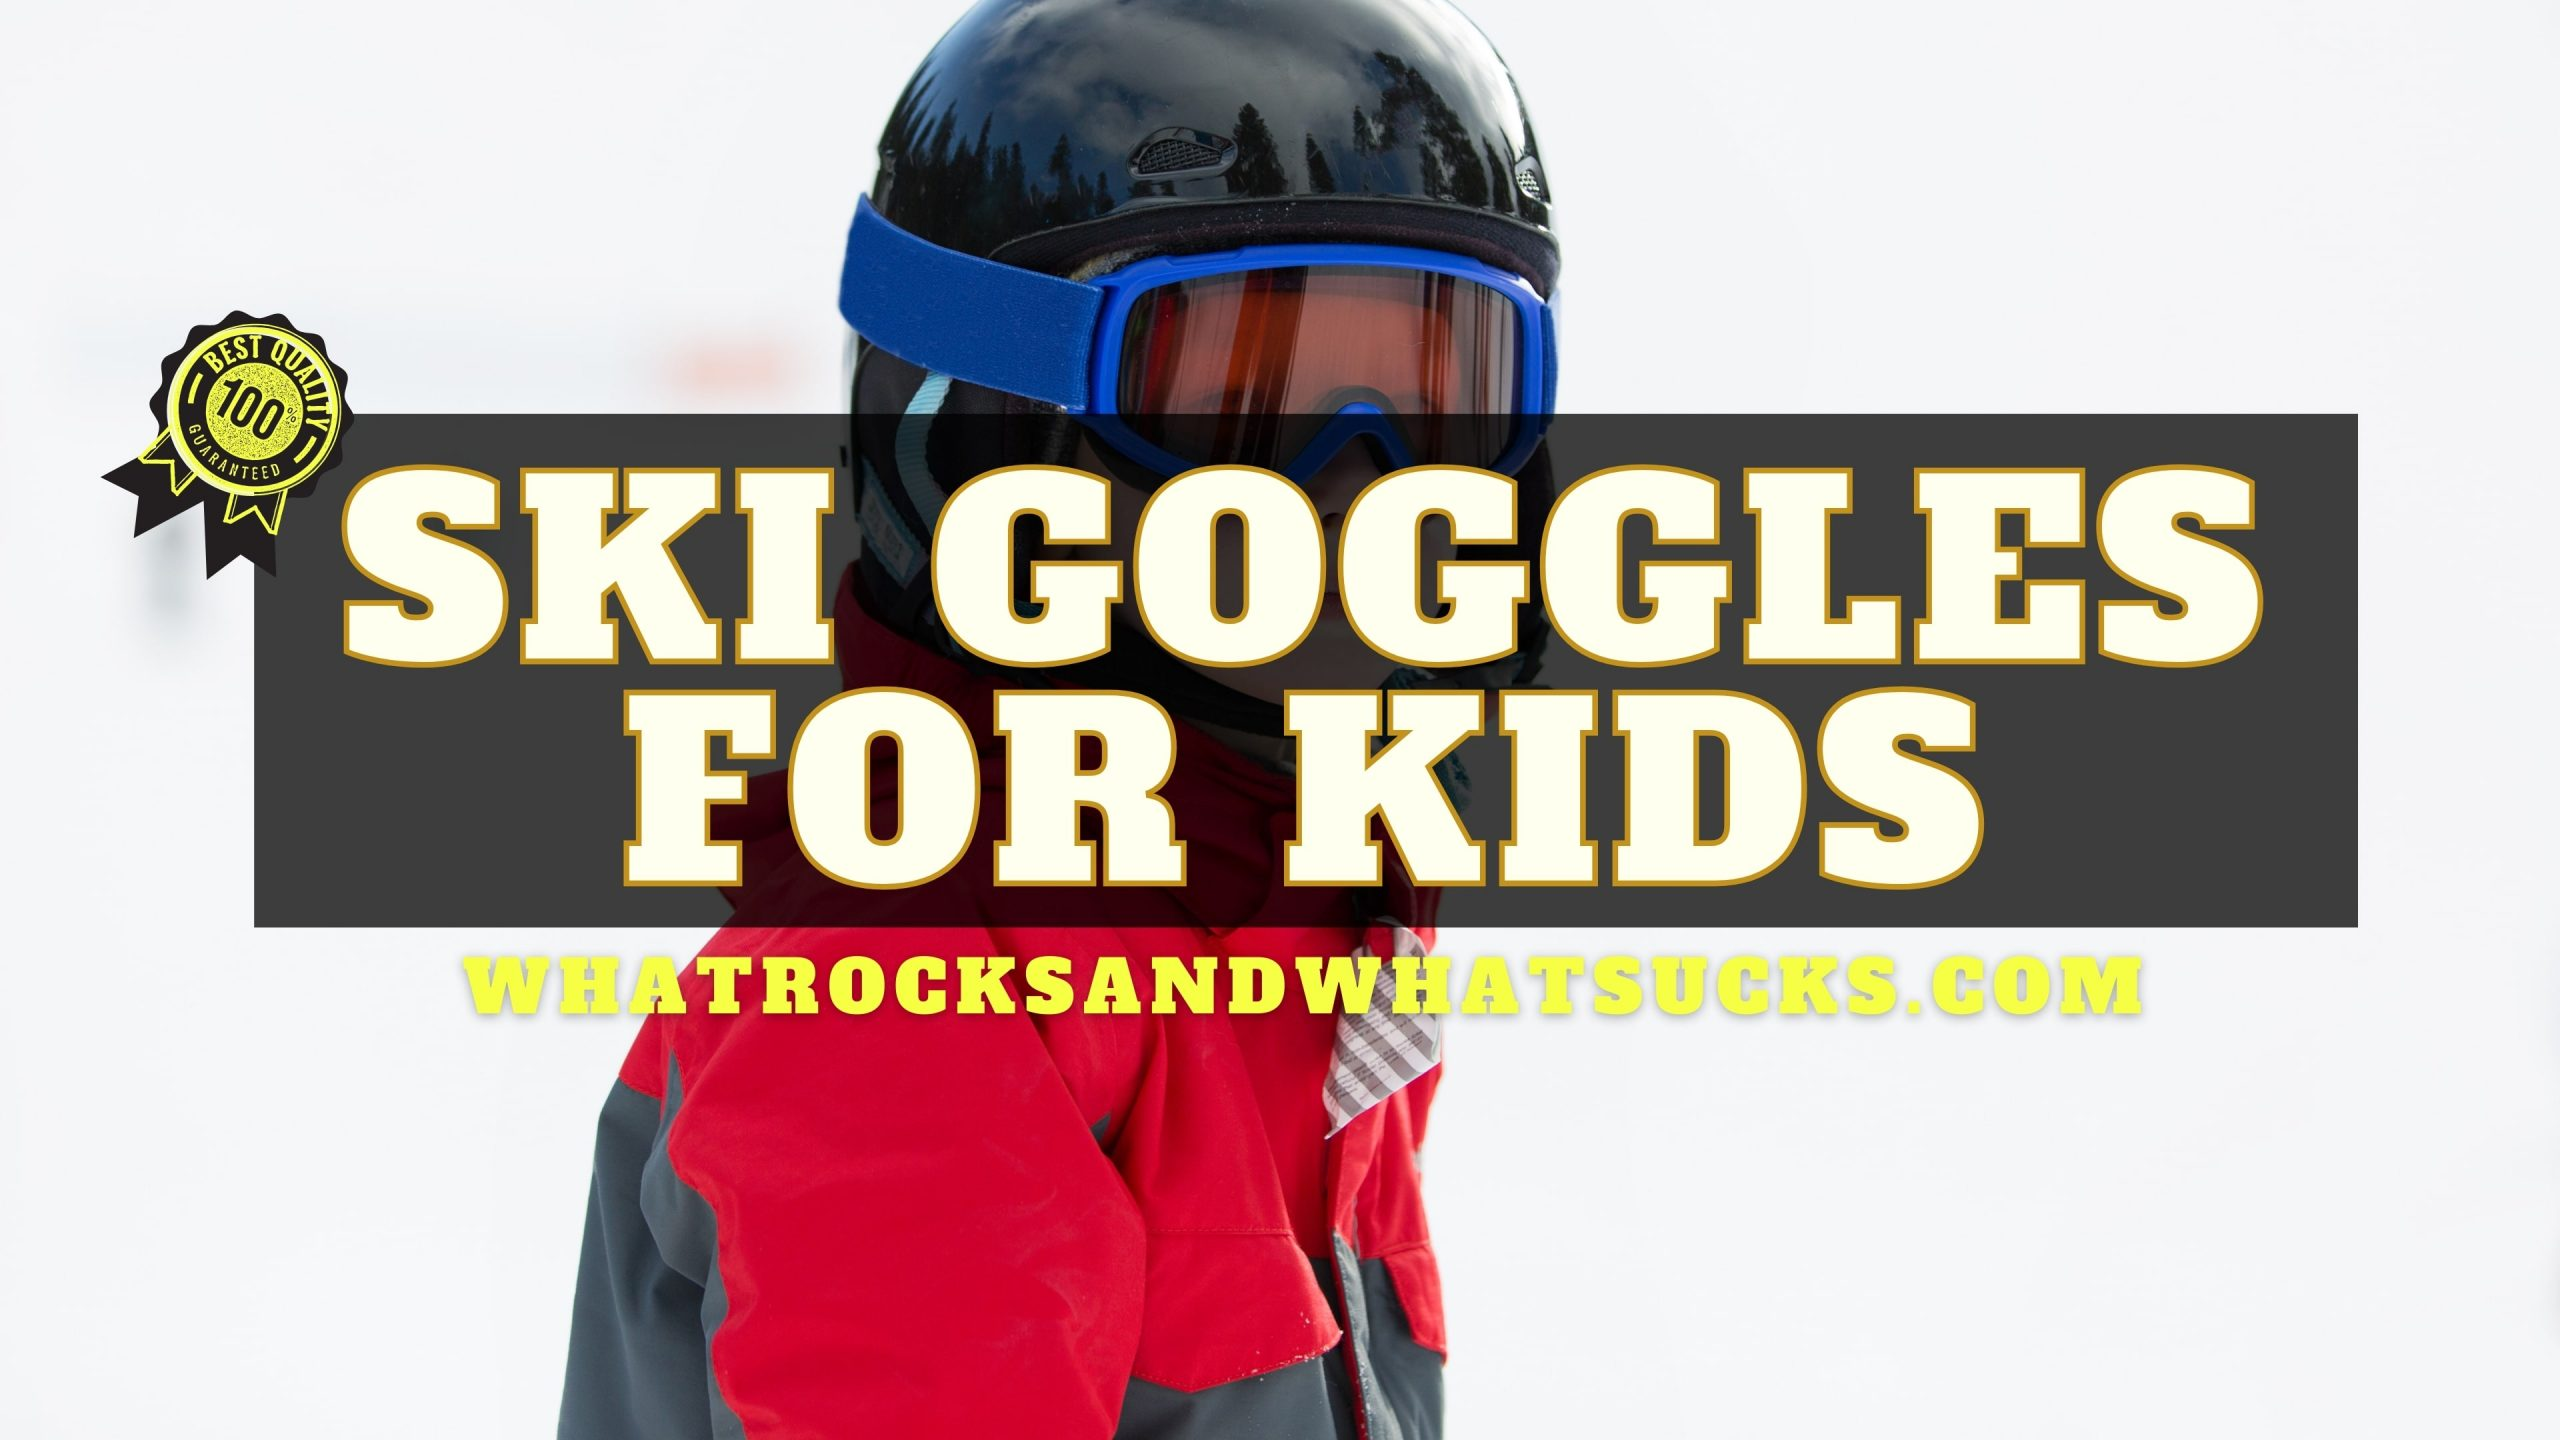 THE BEST SKI GOGGLES FOR KIDS